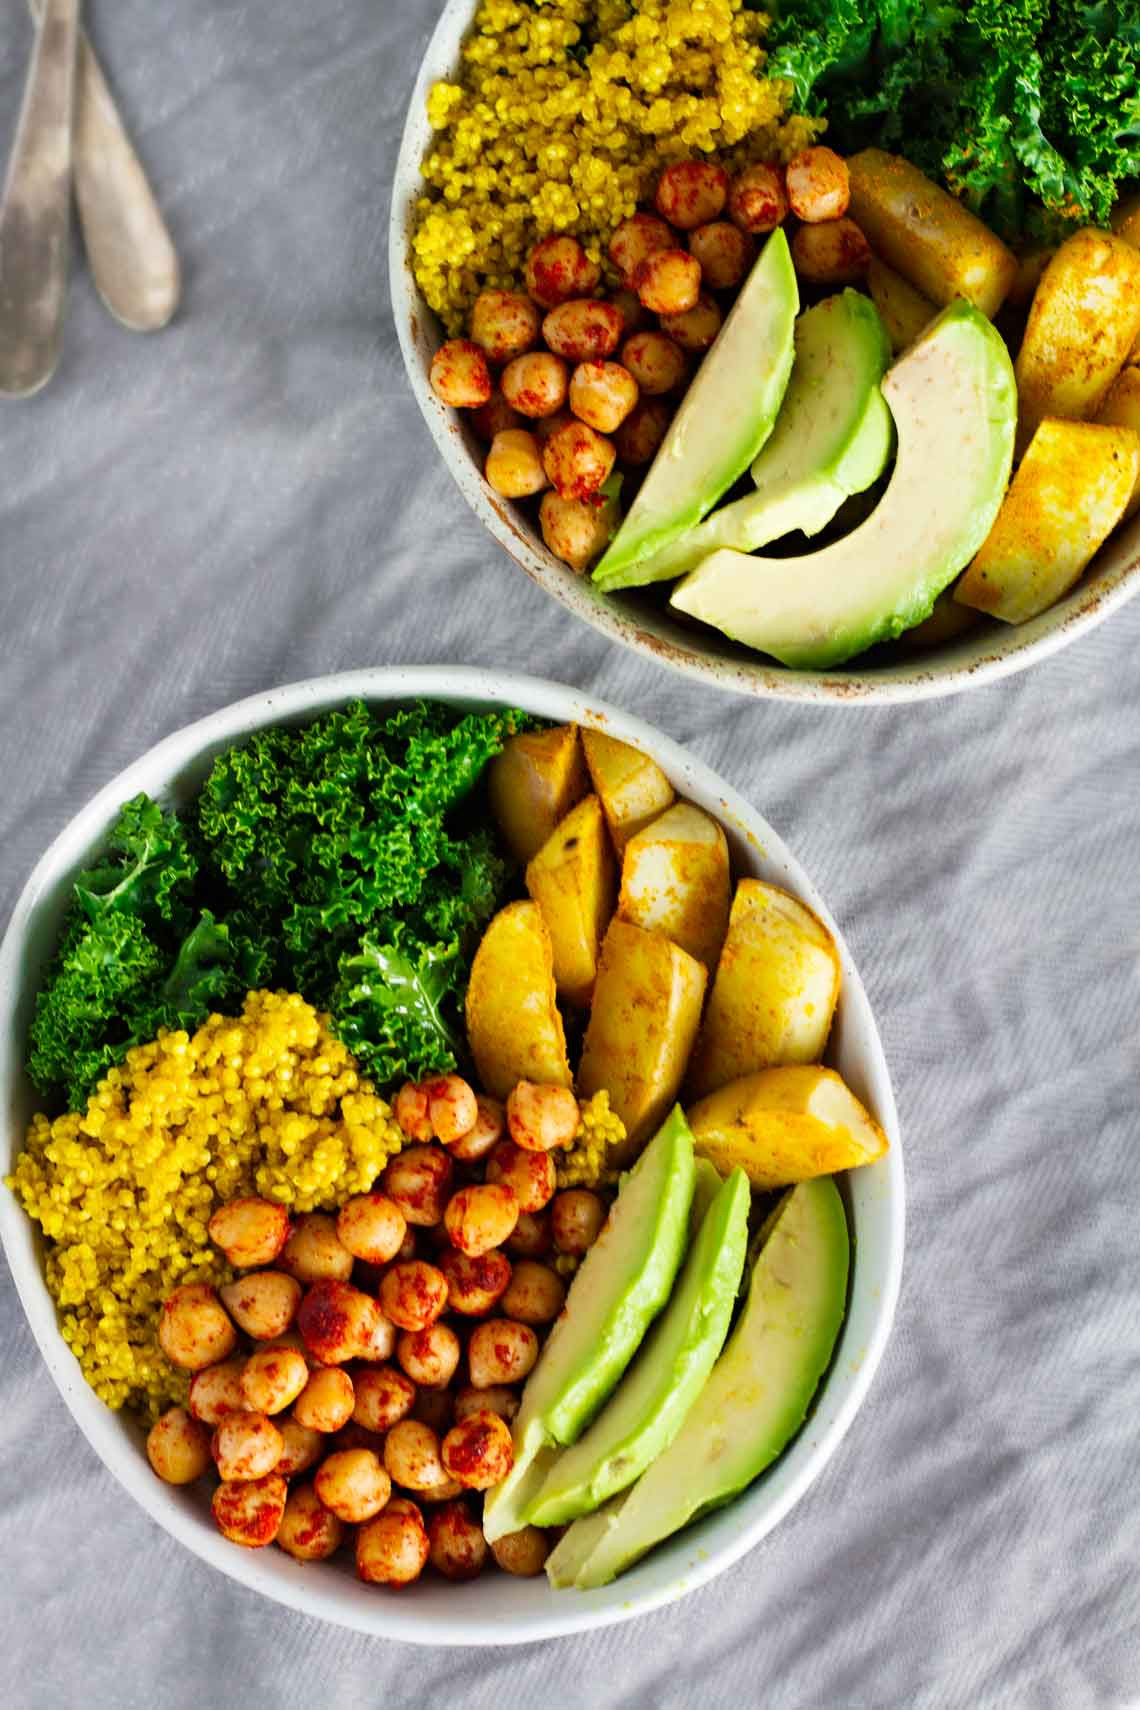 Vegan Protein Bowl Recipes  Vegan Turmeric Quinoa Power Bowls Jar Lemons